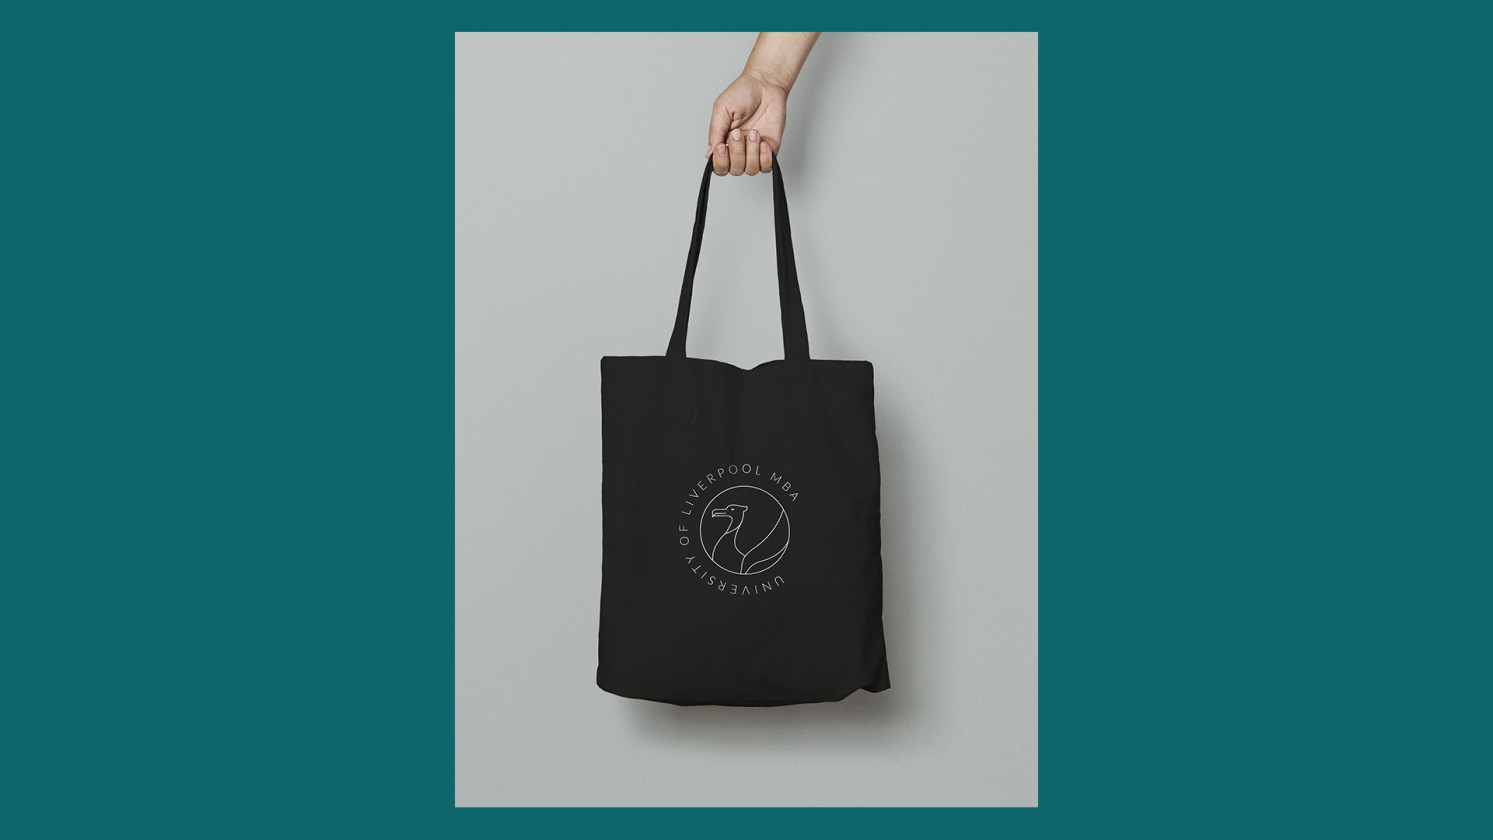 branded materials such as a tote bag